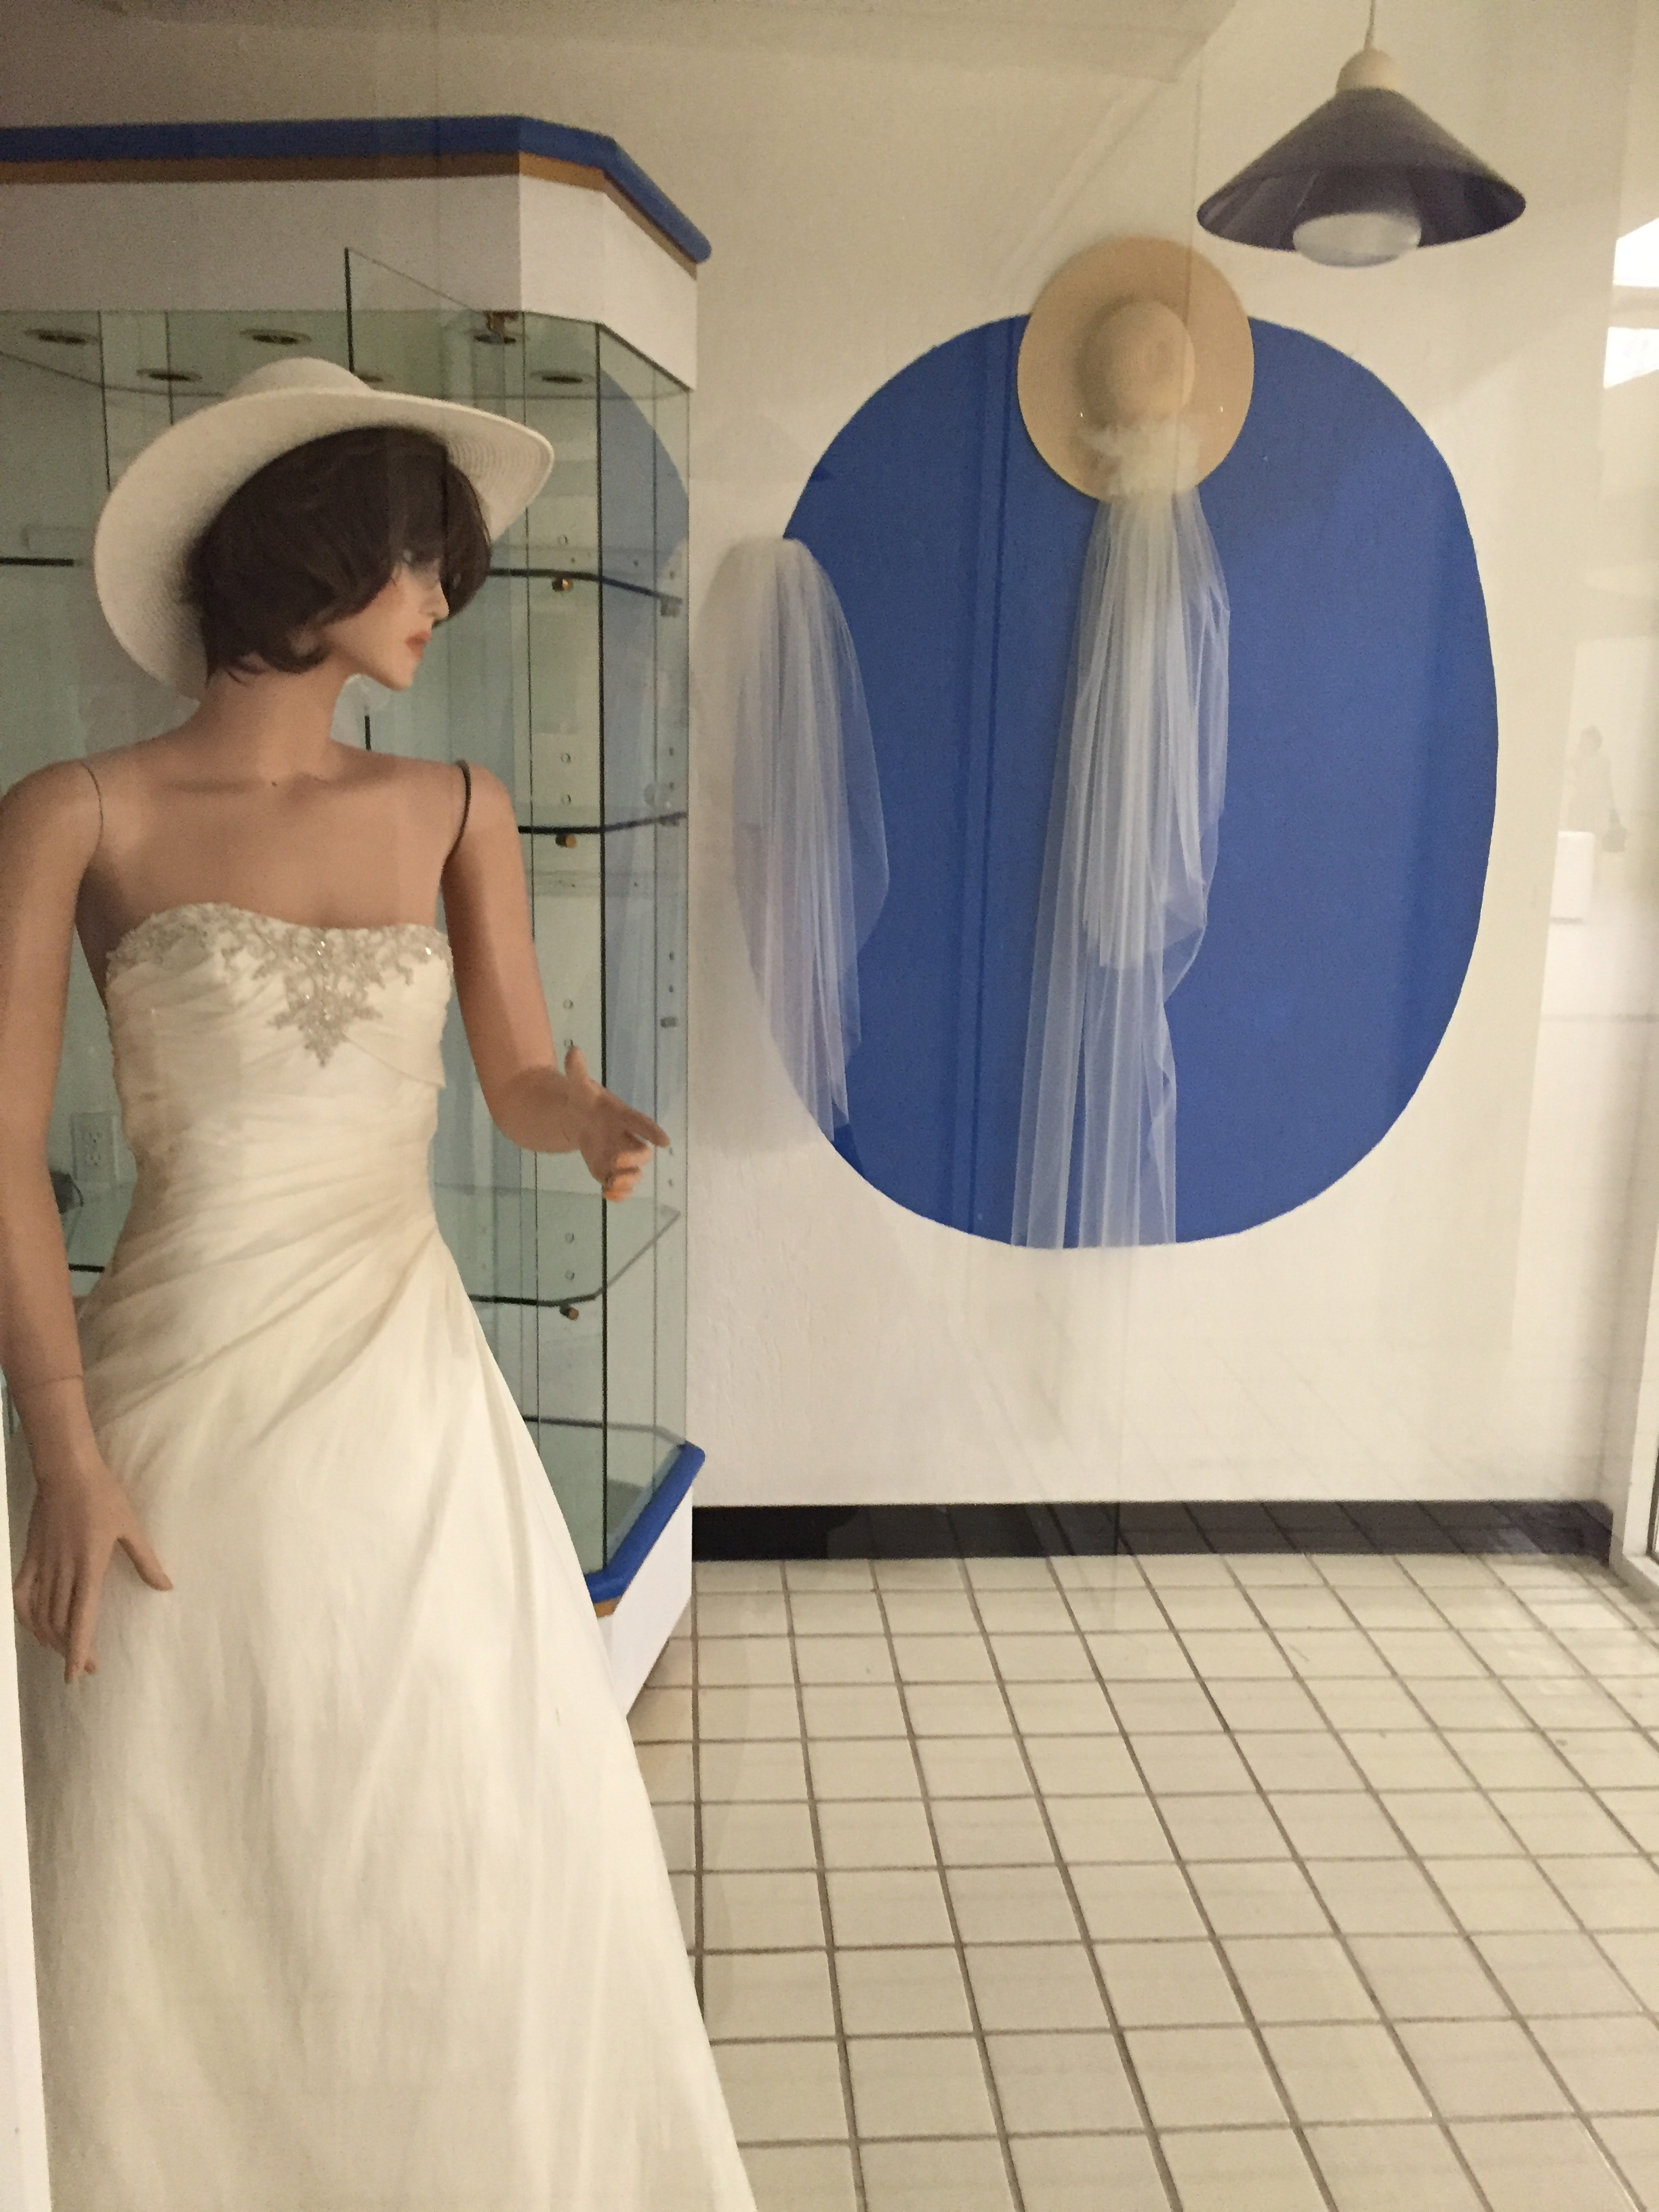 A mannequin in a white sun hat and a wedding gown points at the the viewer, looking away. On the wall behind the mannequin: a display of veils and sunhats.